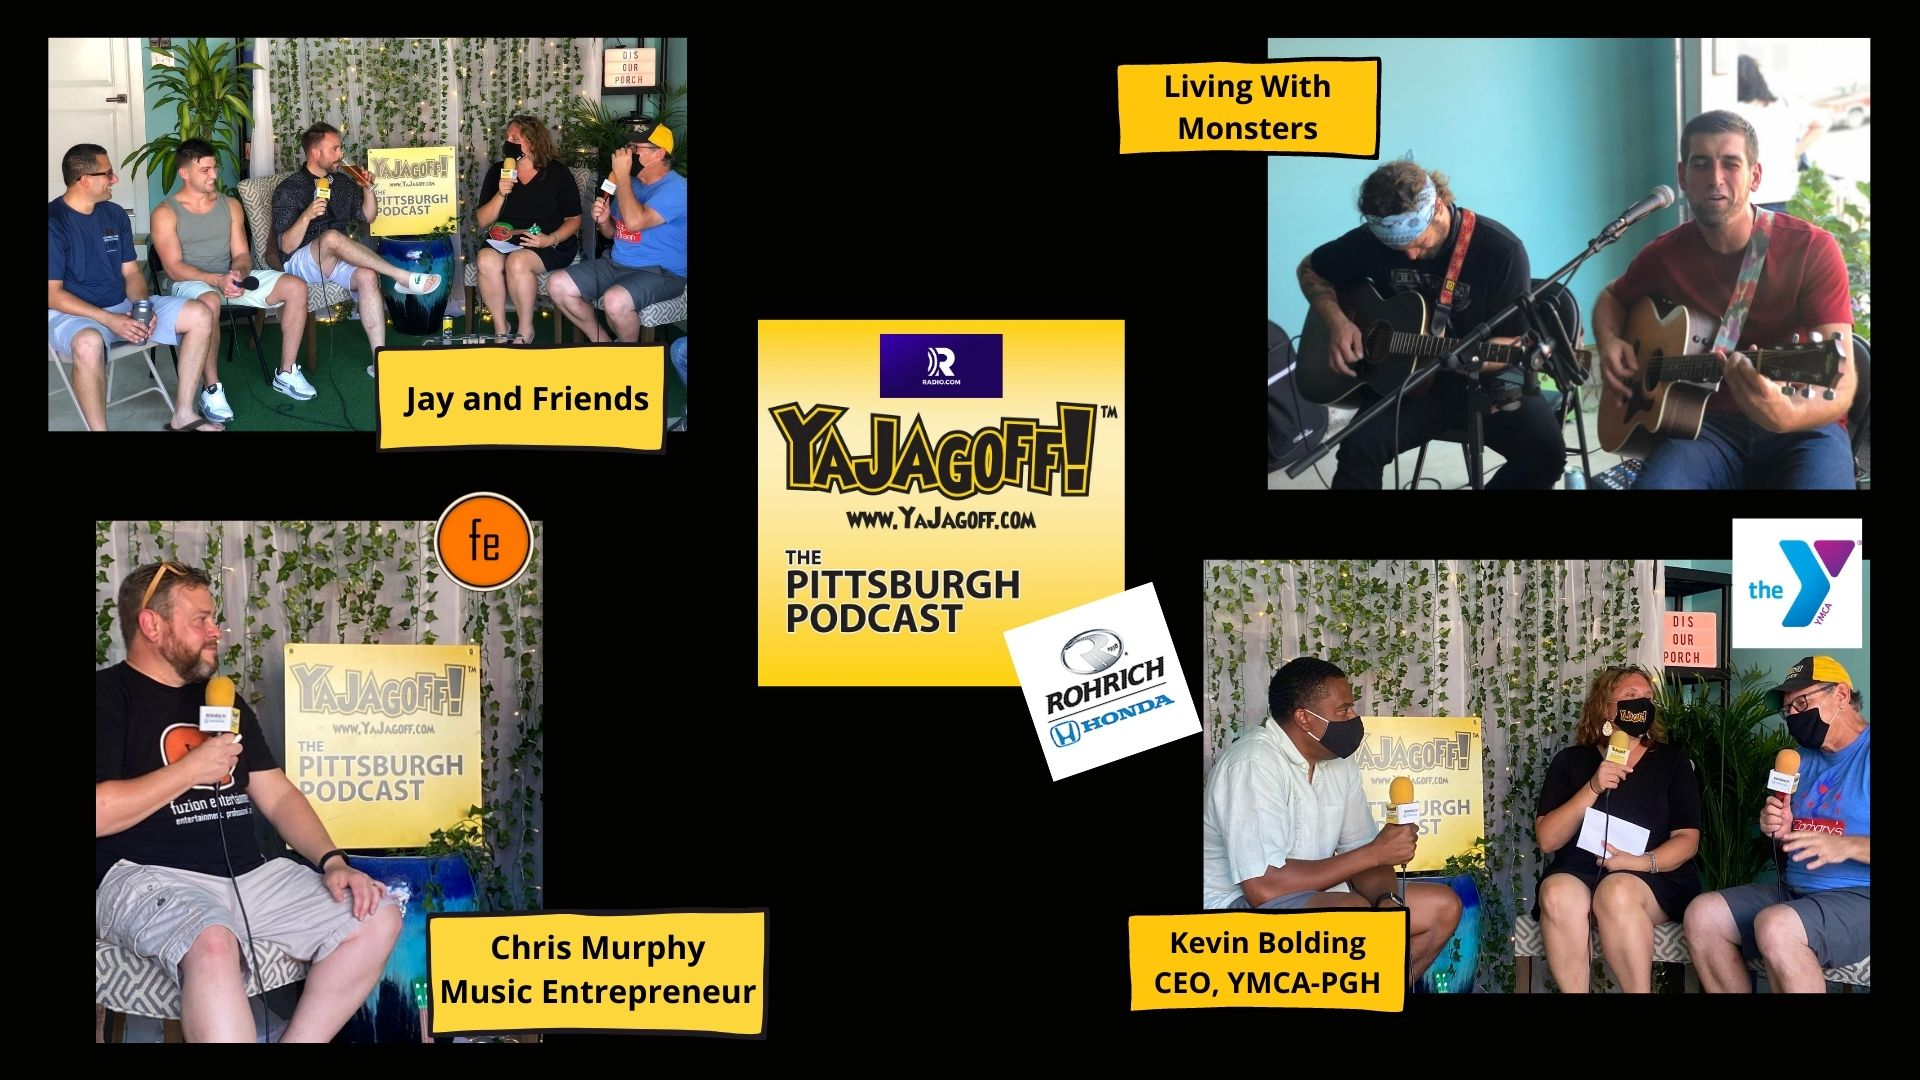 YaJagoff Podcast Pittsburgh YMCA